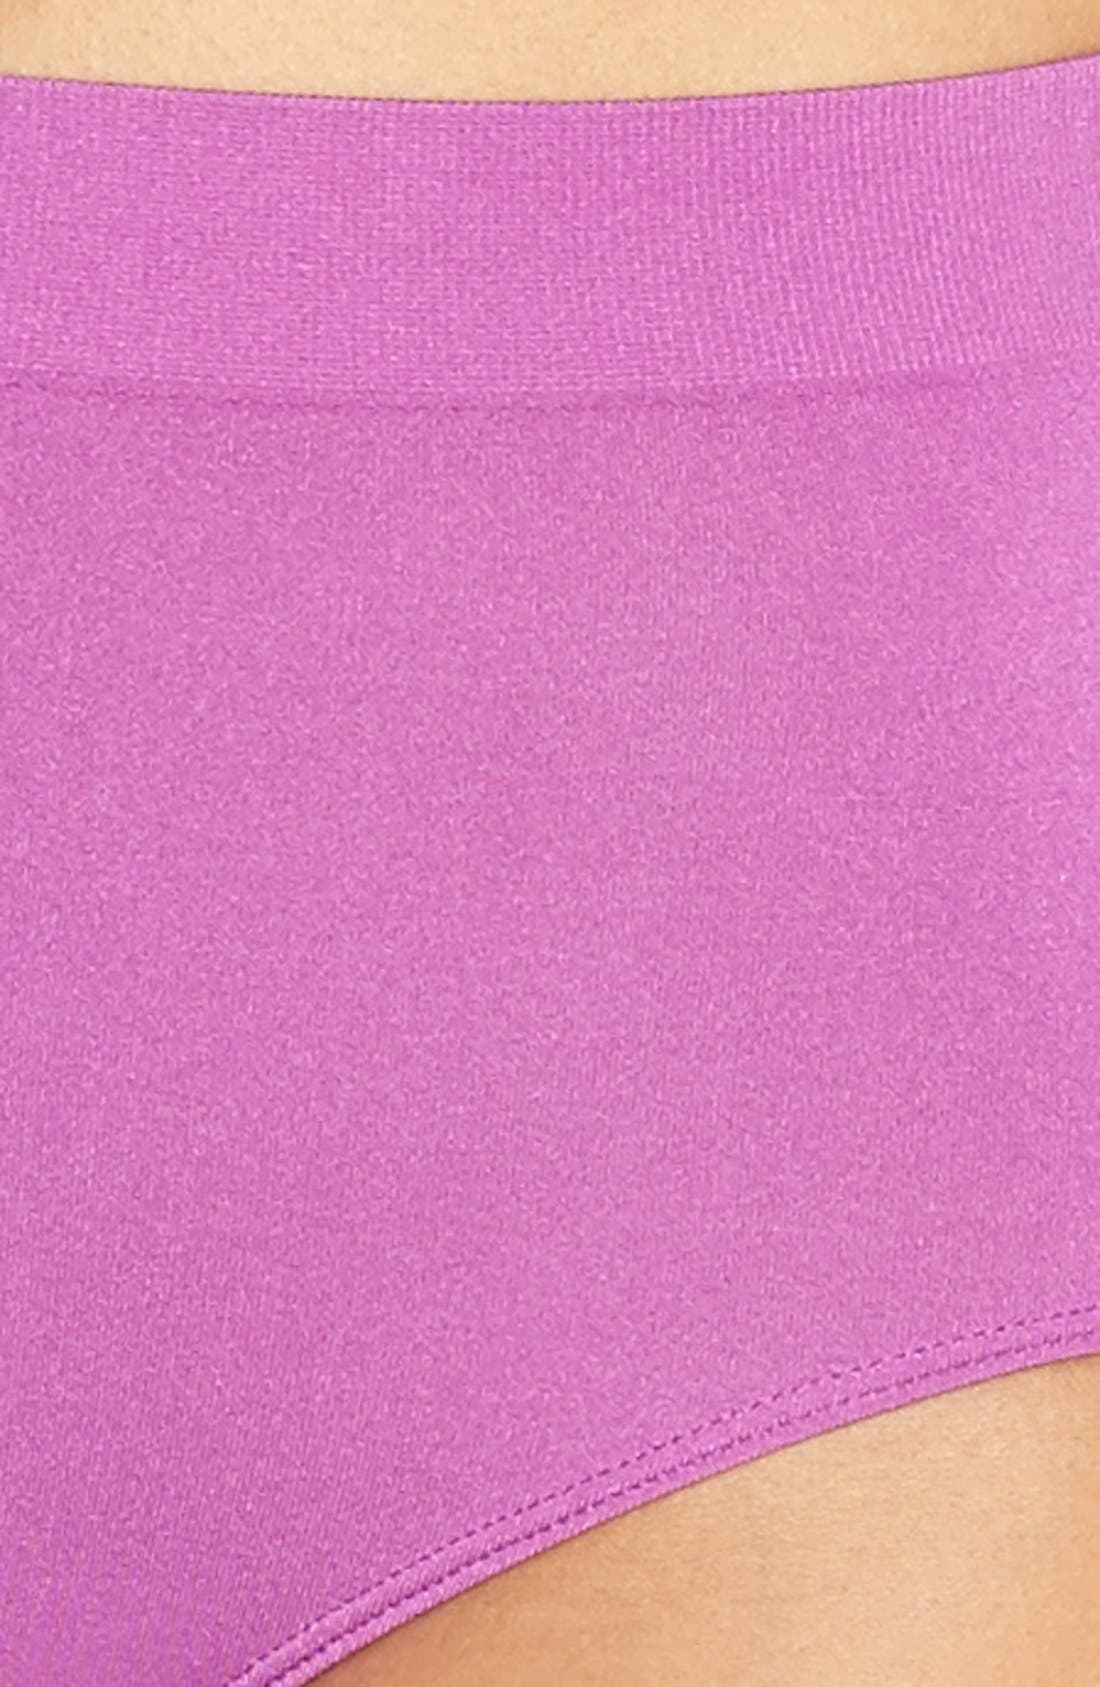 B Smooth Briefs,                             Alternate thumbnail 221, color,